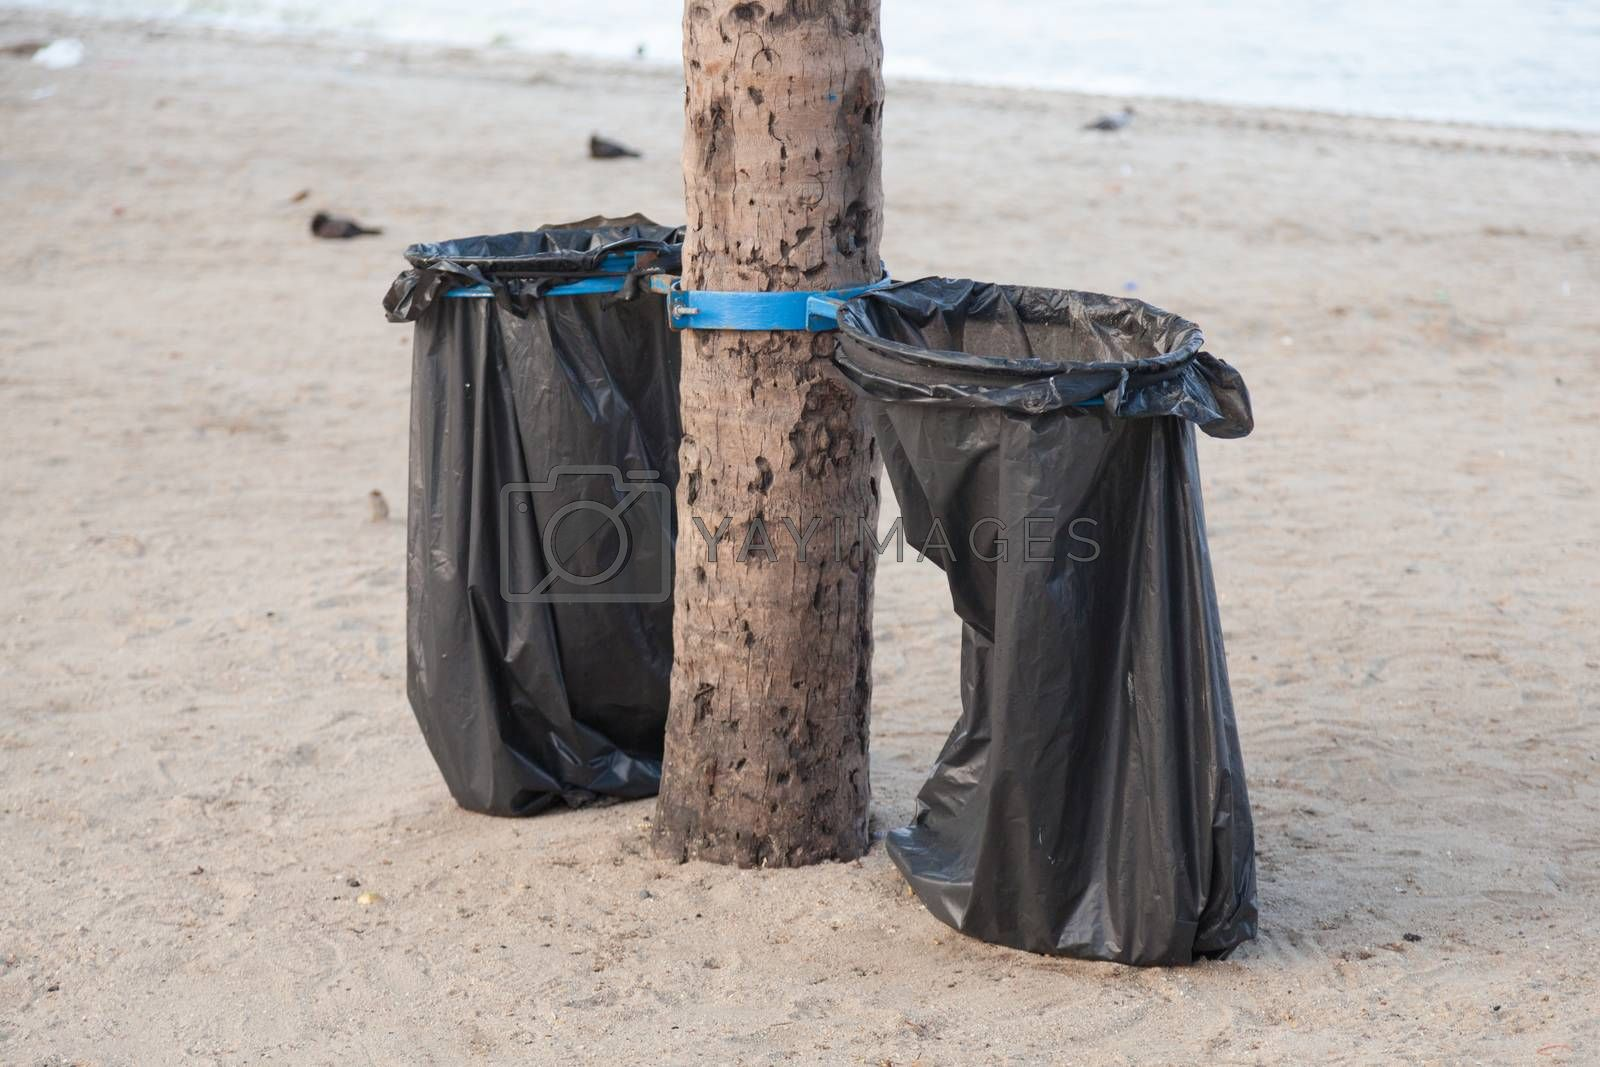 Black garbage bags by a454